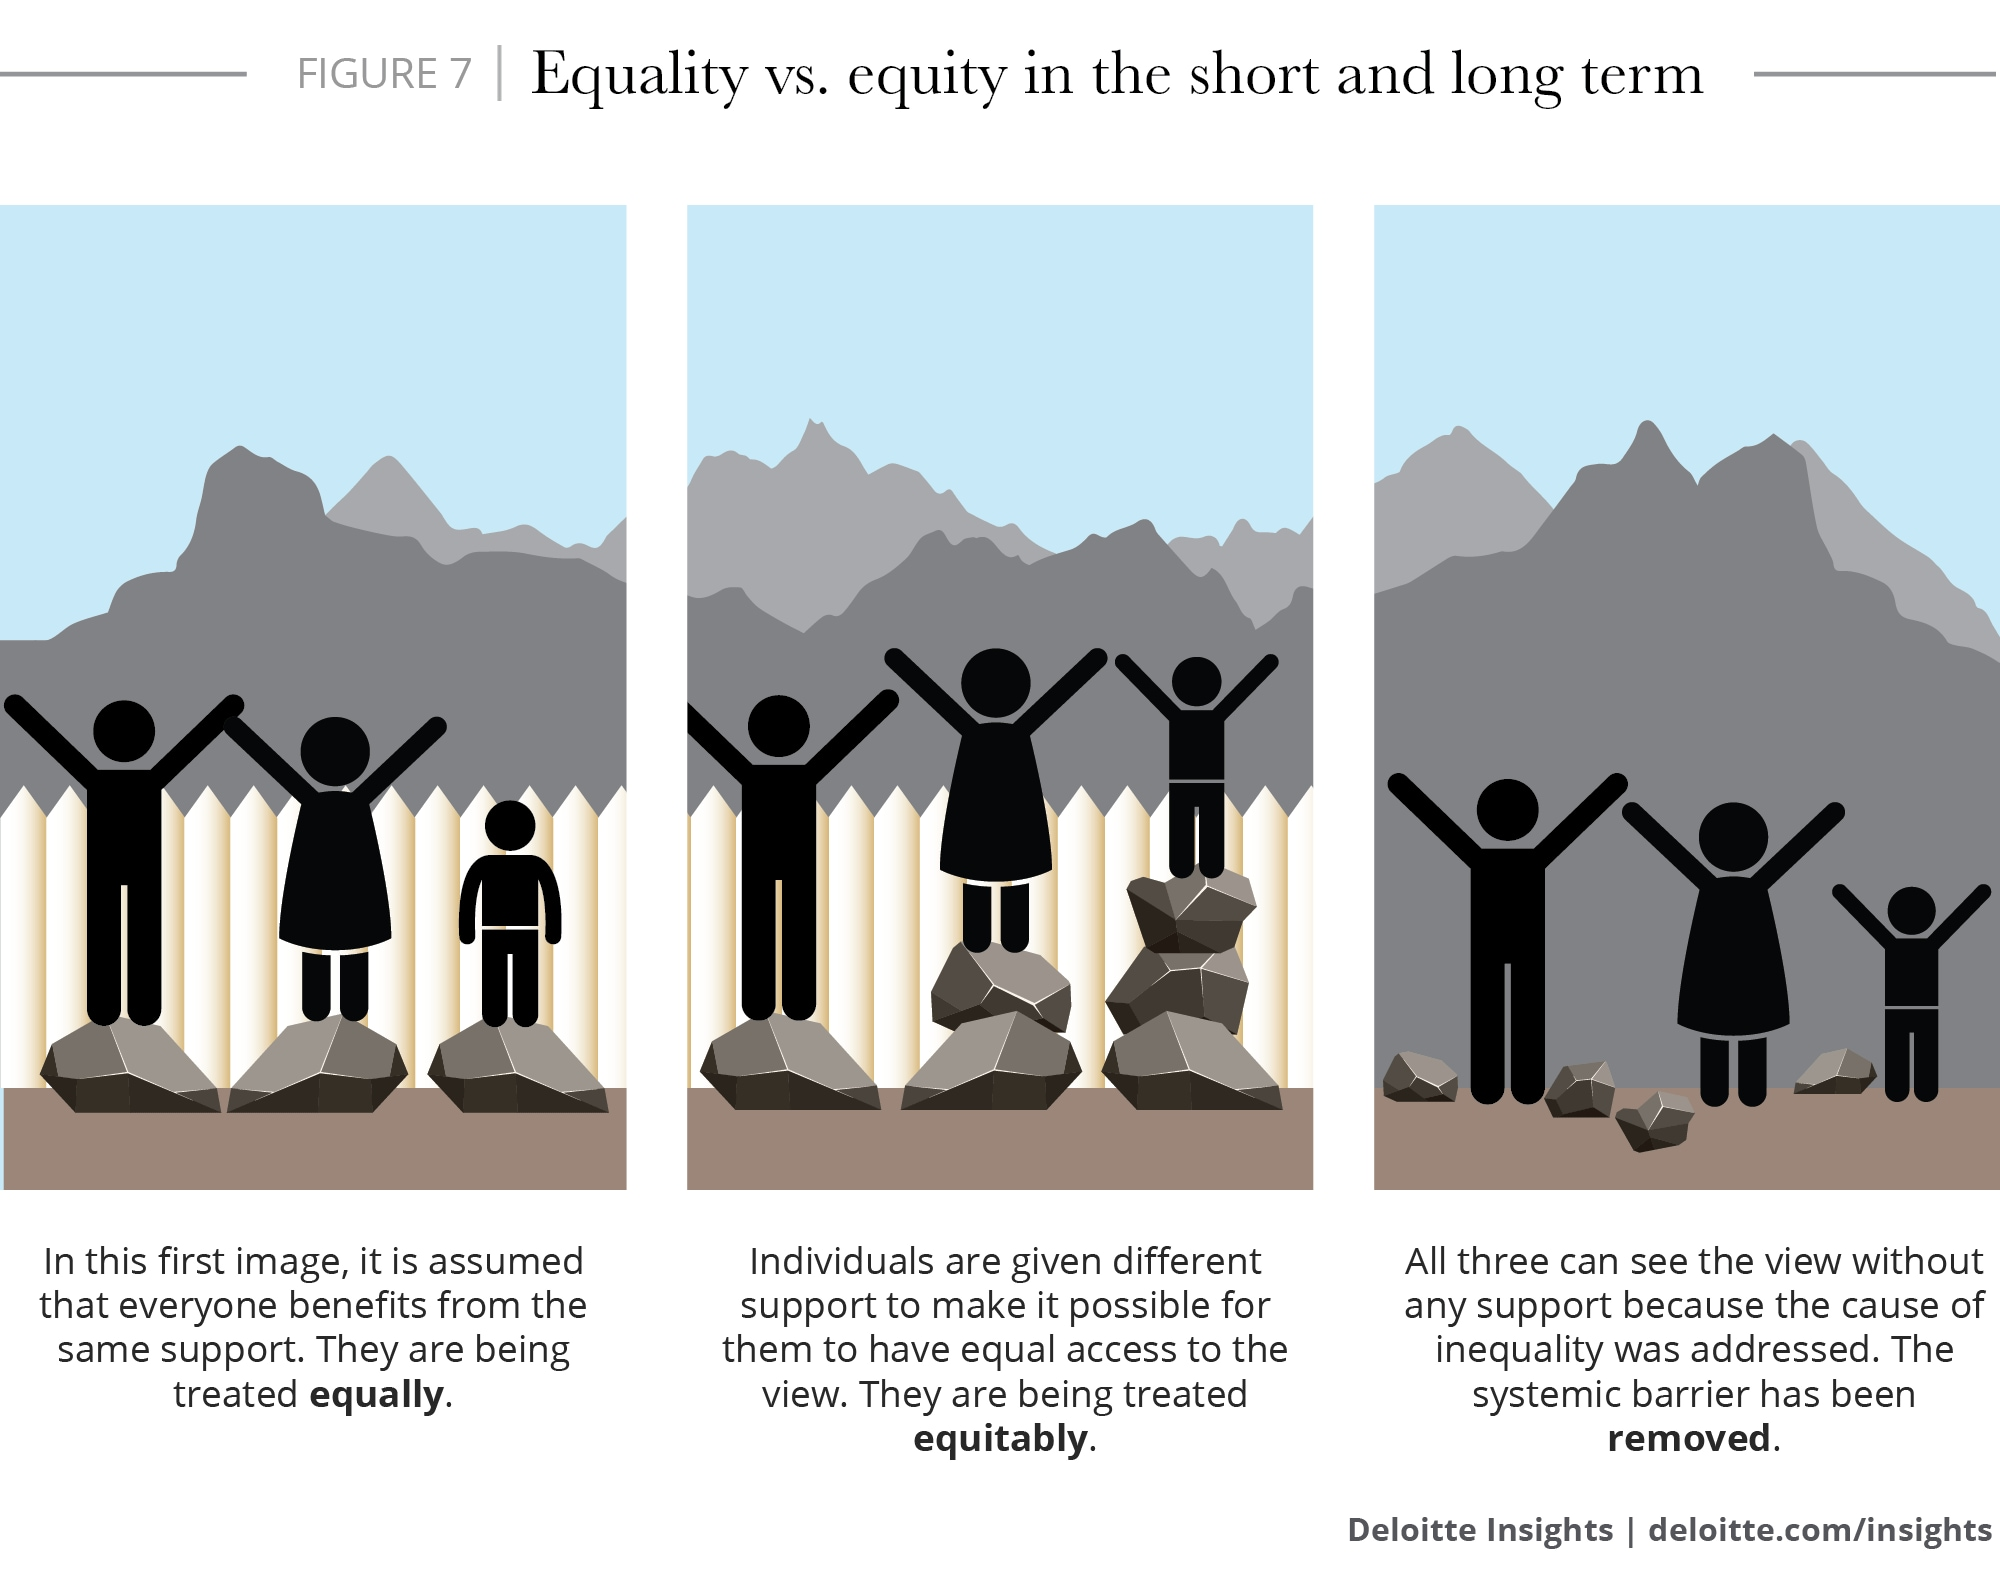 Equality vs. equity in the short- and long-term